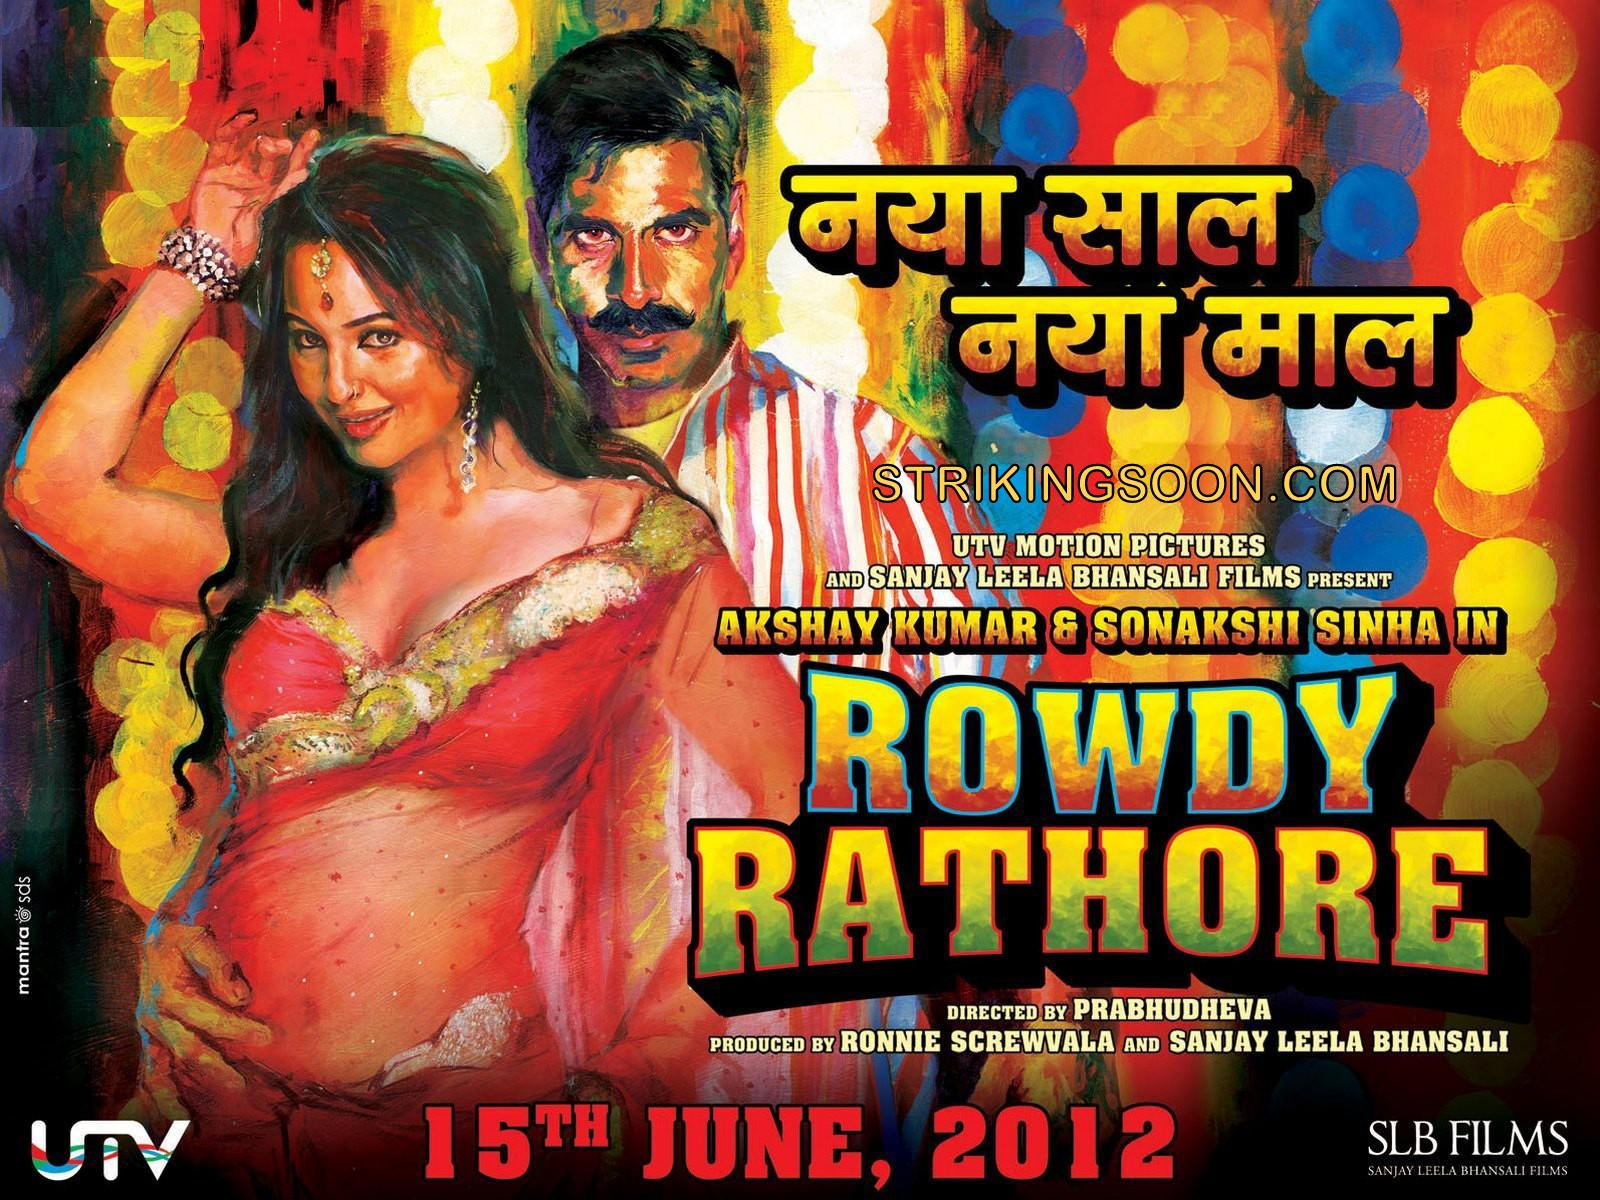 http://2.bp.blogspot.com/-d1gCRAyD2rs/T8YeaFkp3TI/AAAAAAAAIUY/c2YTrXk3fys/s1600/image-from-latest-movie-rowdy-rathore.jpg